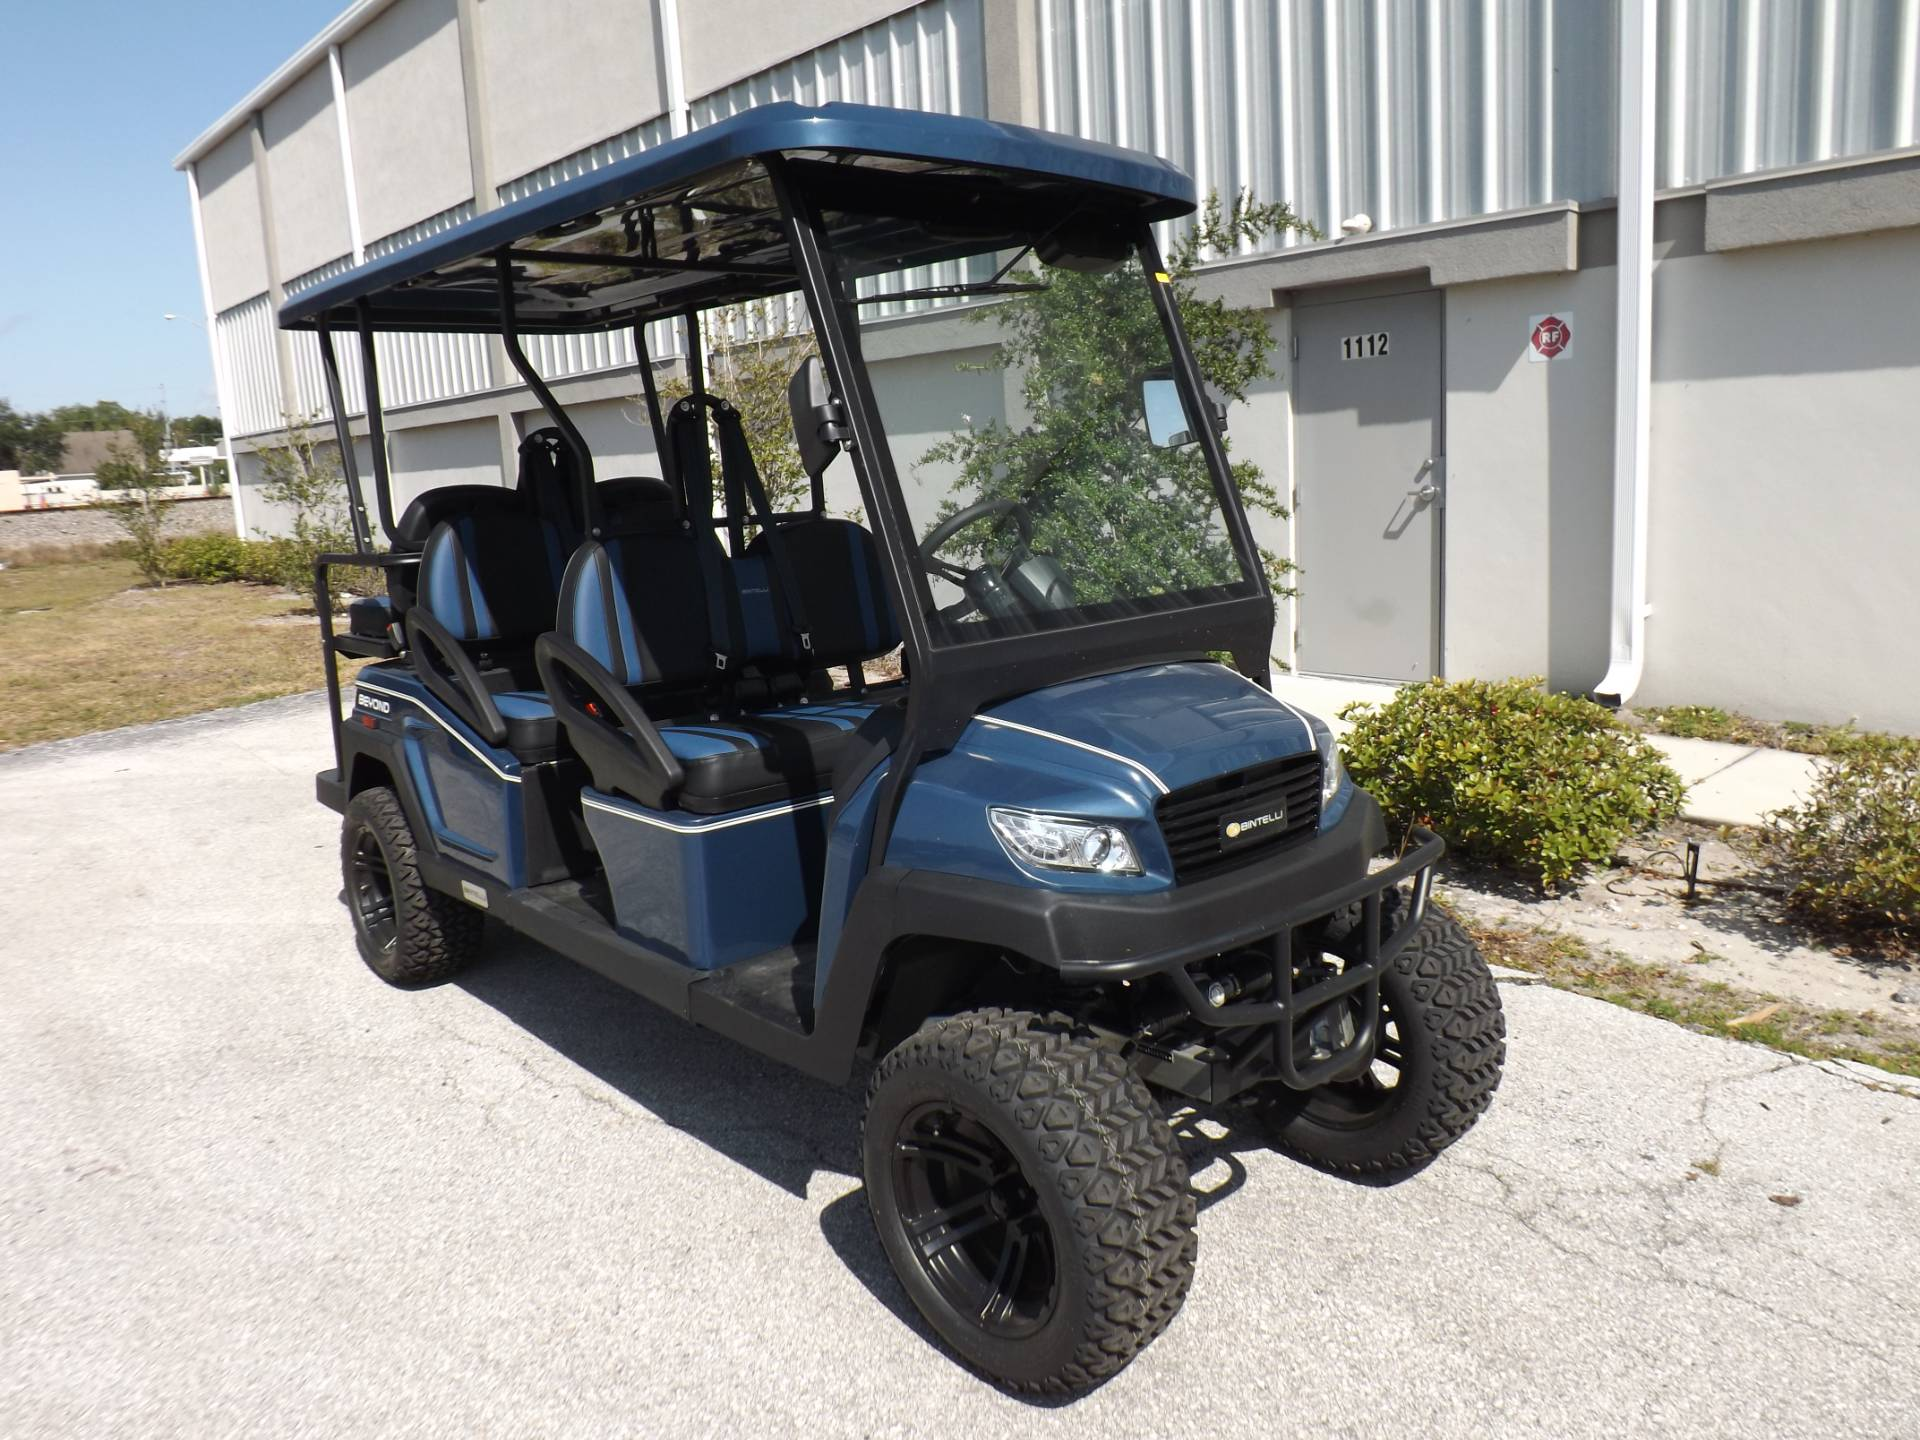 2021 Bintelli BEYOND 6P LIFTED STREET LEGAL GOLF CART in Lakeland, Florida - Photo 1